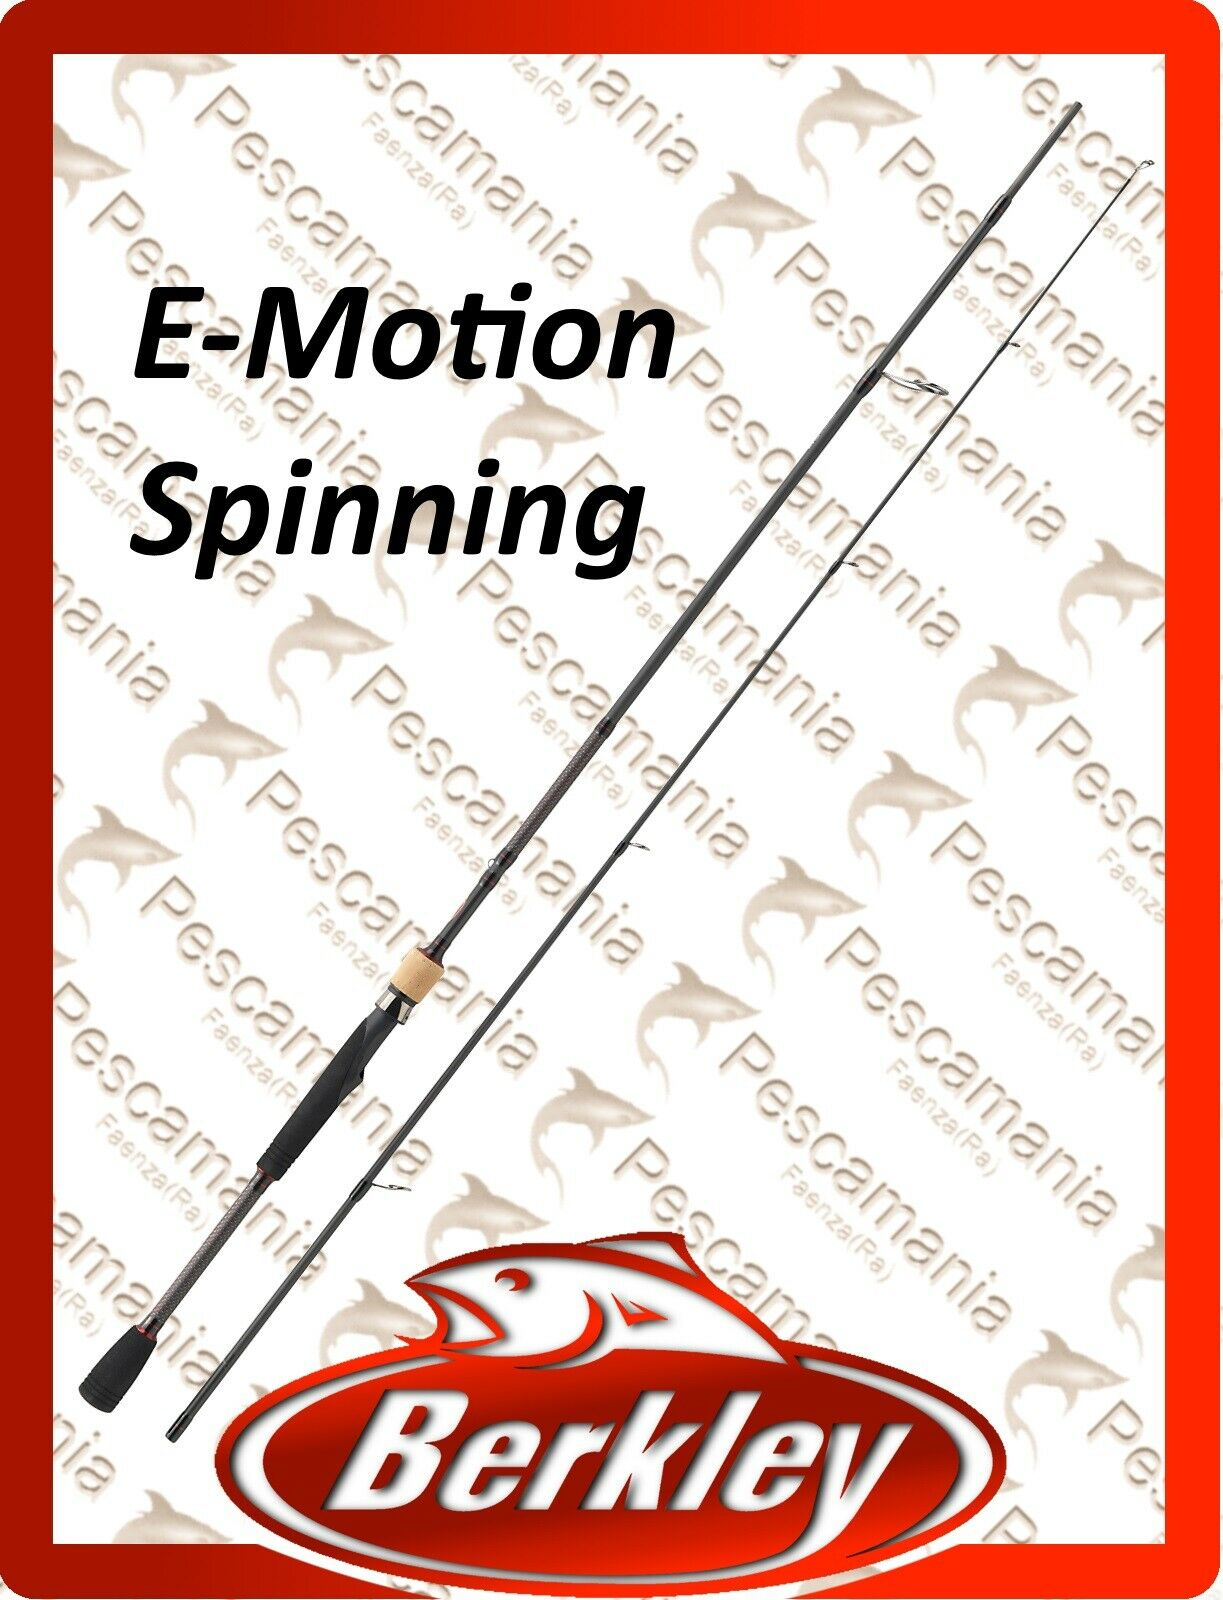 Spinning Rod Berkley E-Motion Bass Trout Pike 6' -7'-8' -9'